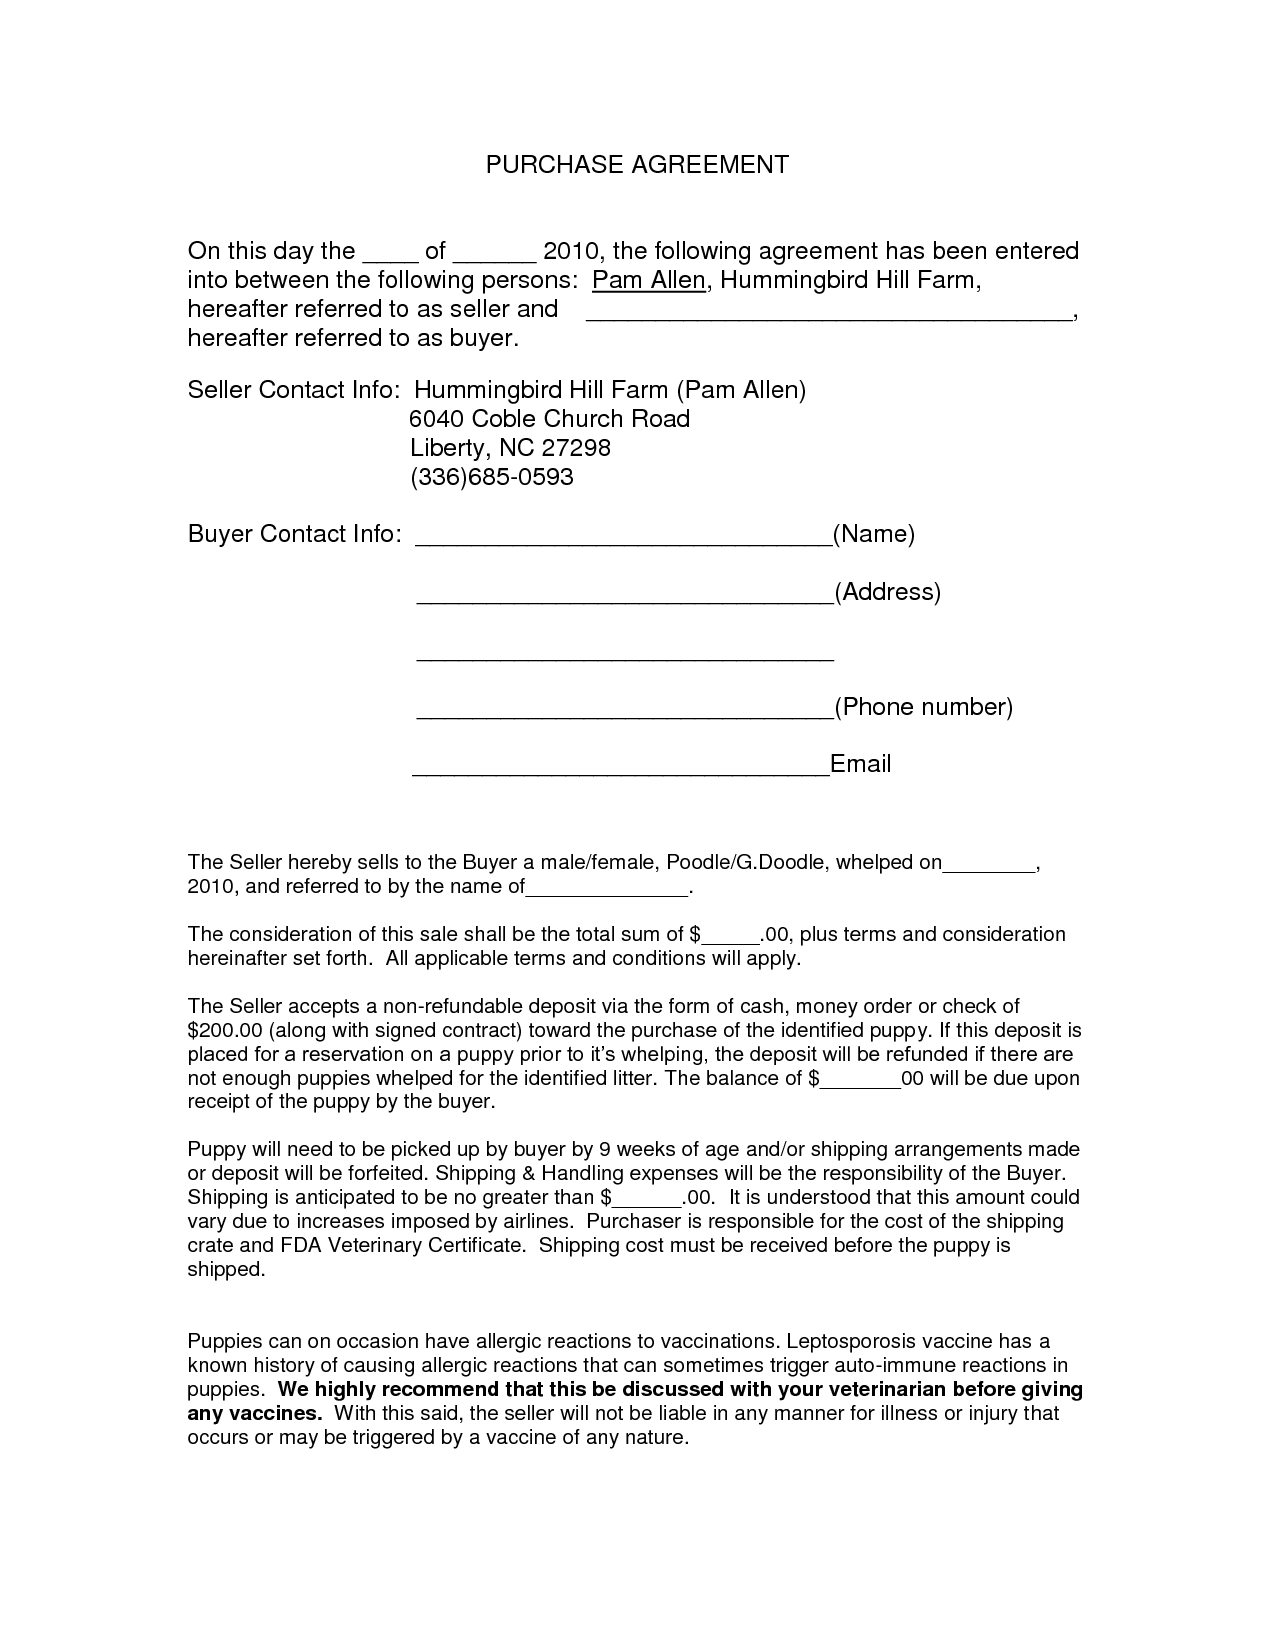 Car Lease Agreement Format Word And Pdf Rental Agreement Templates Car Lease Lease Agreement